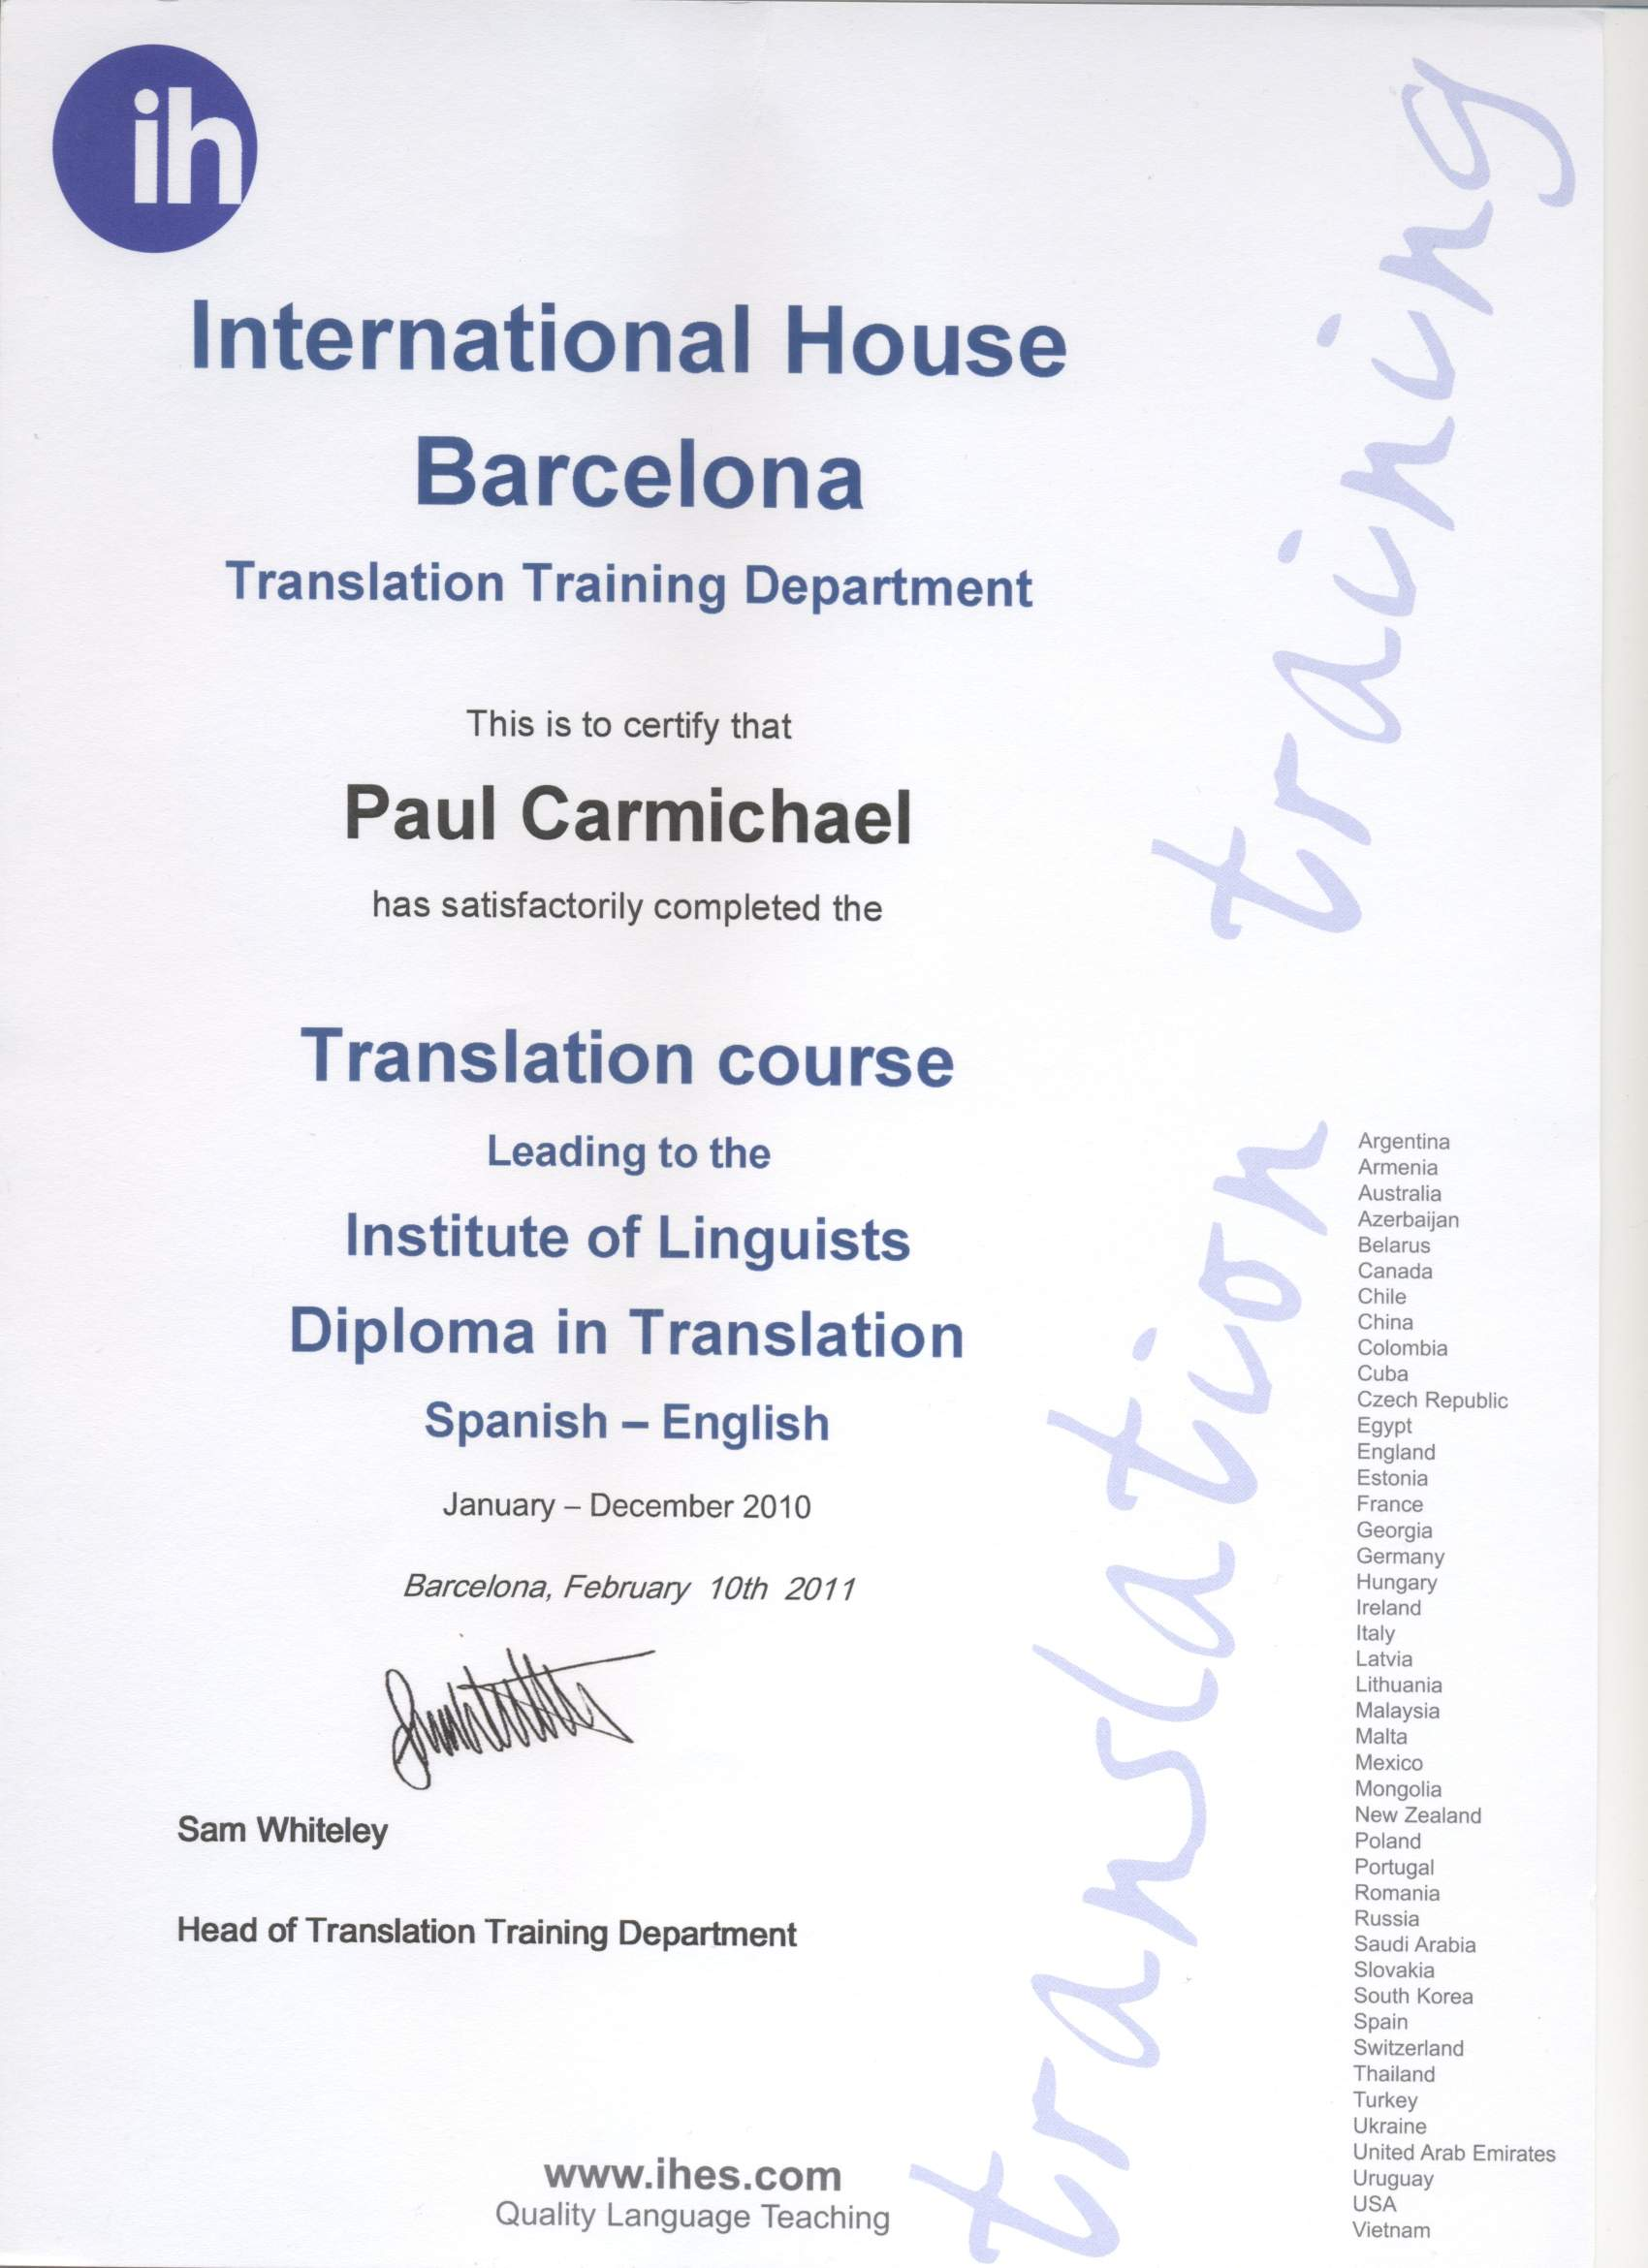 cv joined various professional associations published book of parallel texts added sdl trados certification and i continue doing mostly it translations